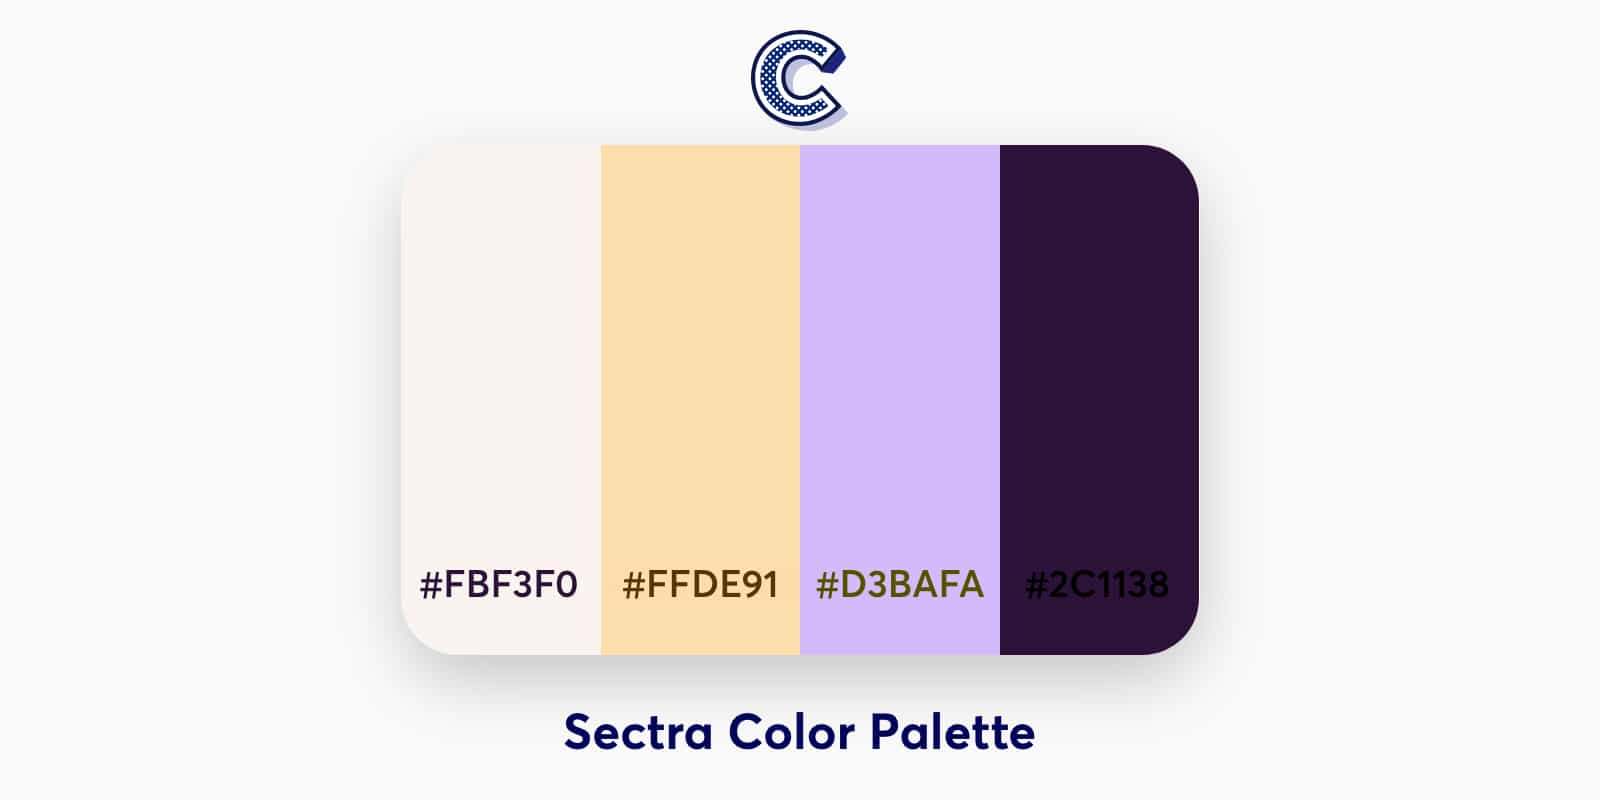 the featured image of spectra color palette